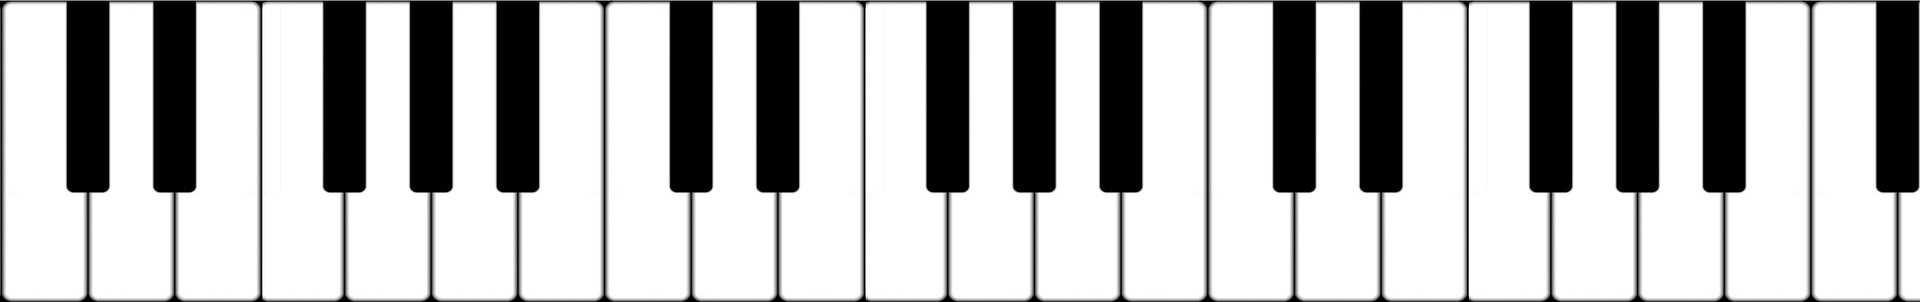 Piano Keys To Learn In Piano Lessons